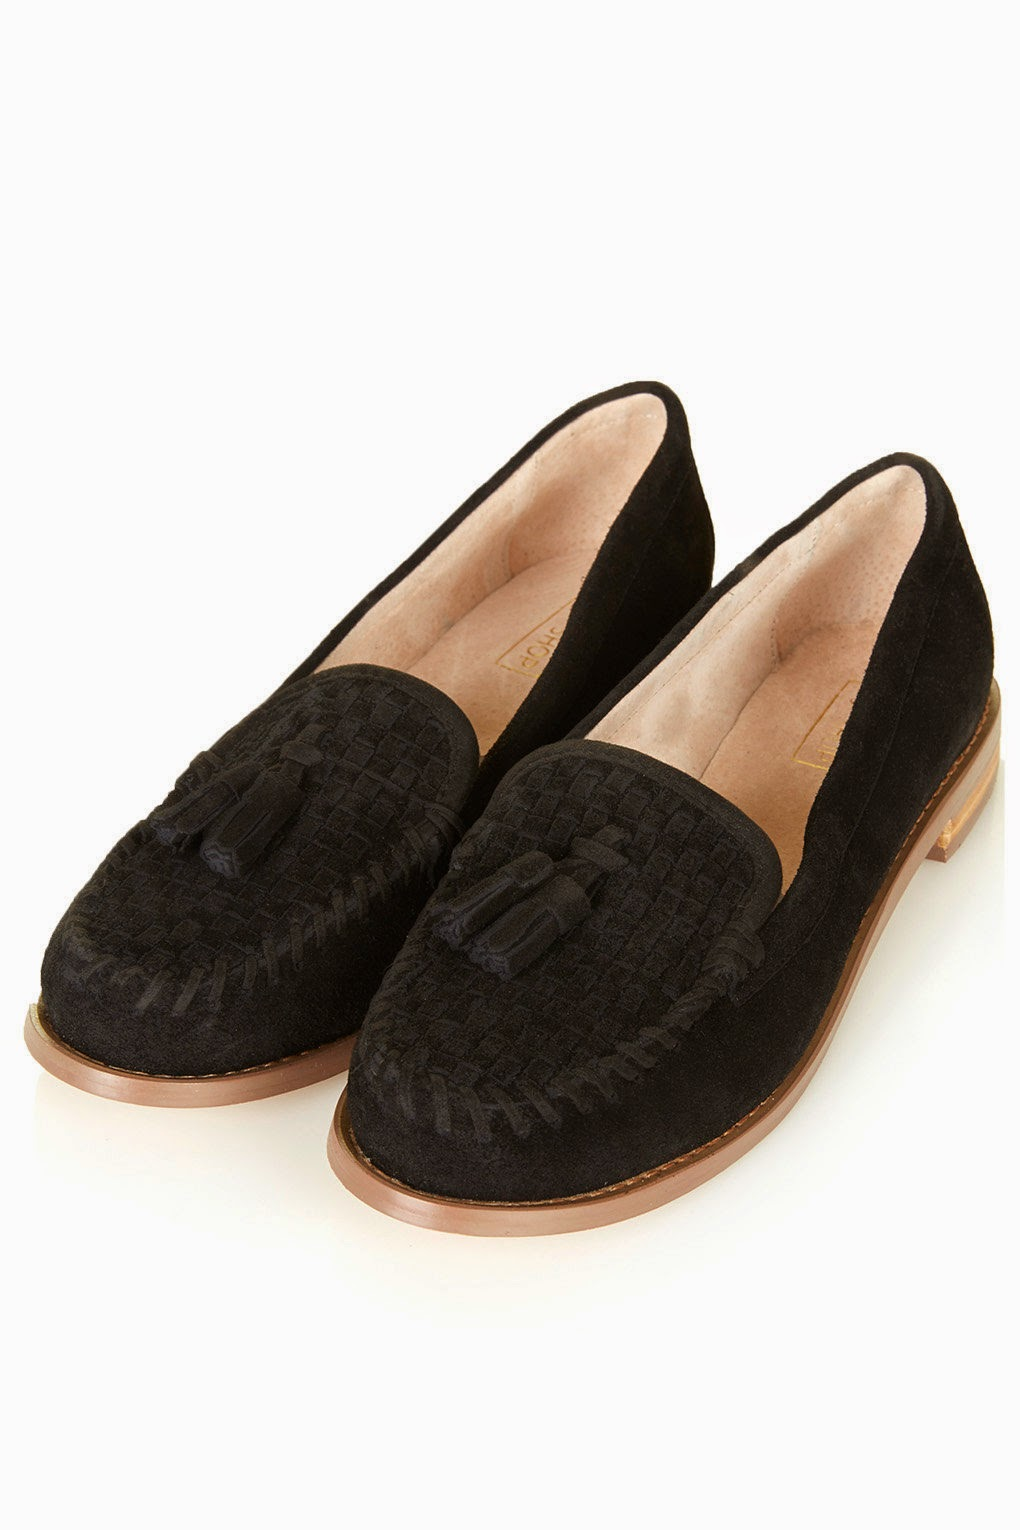 black suede tassel loafers, black suede shoes topshop,